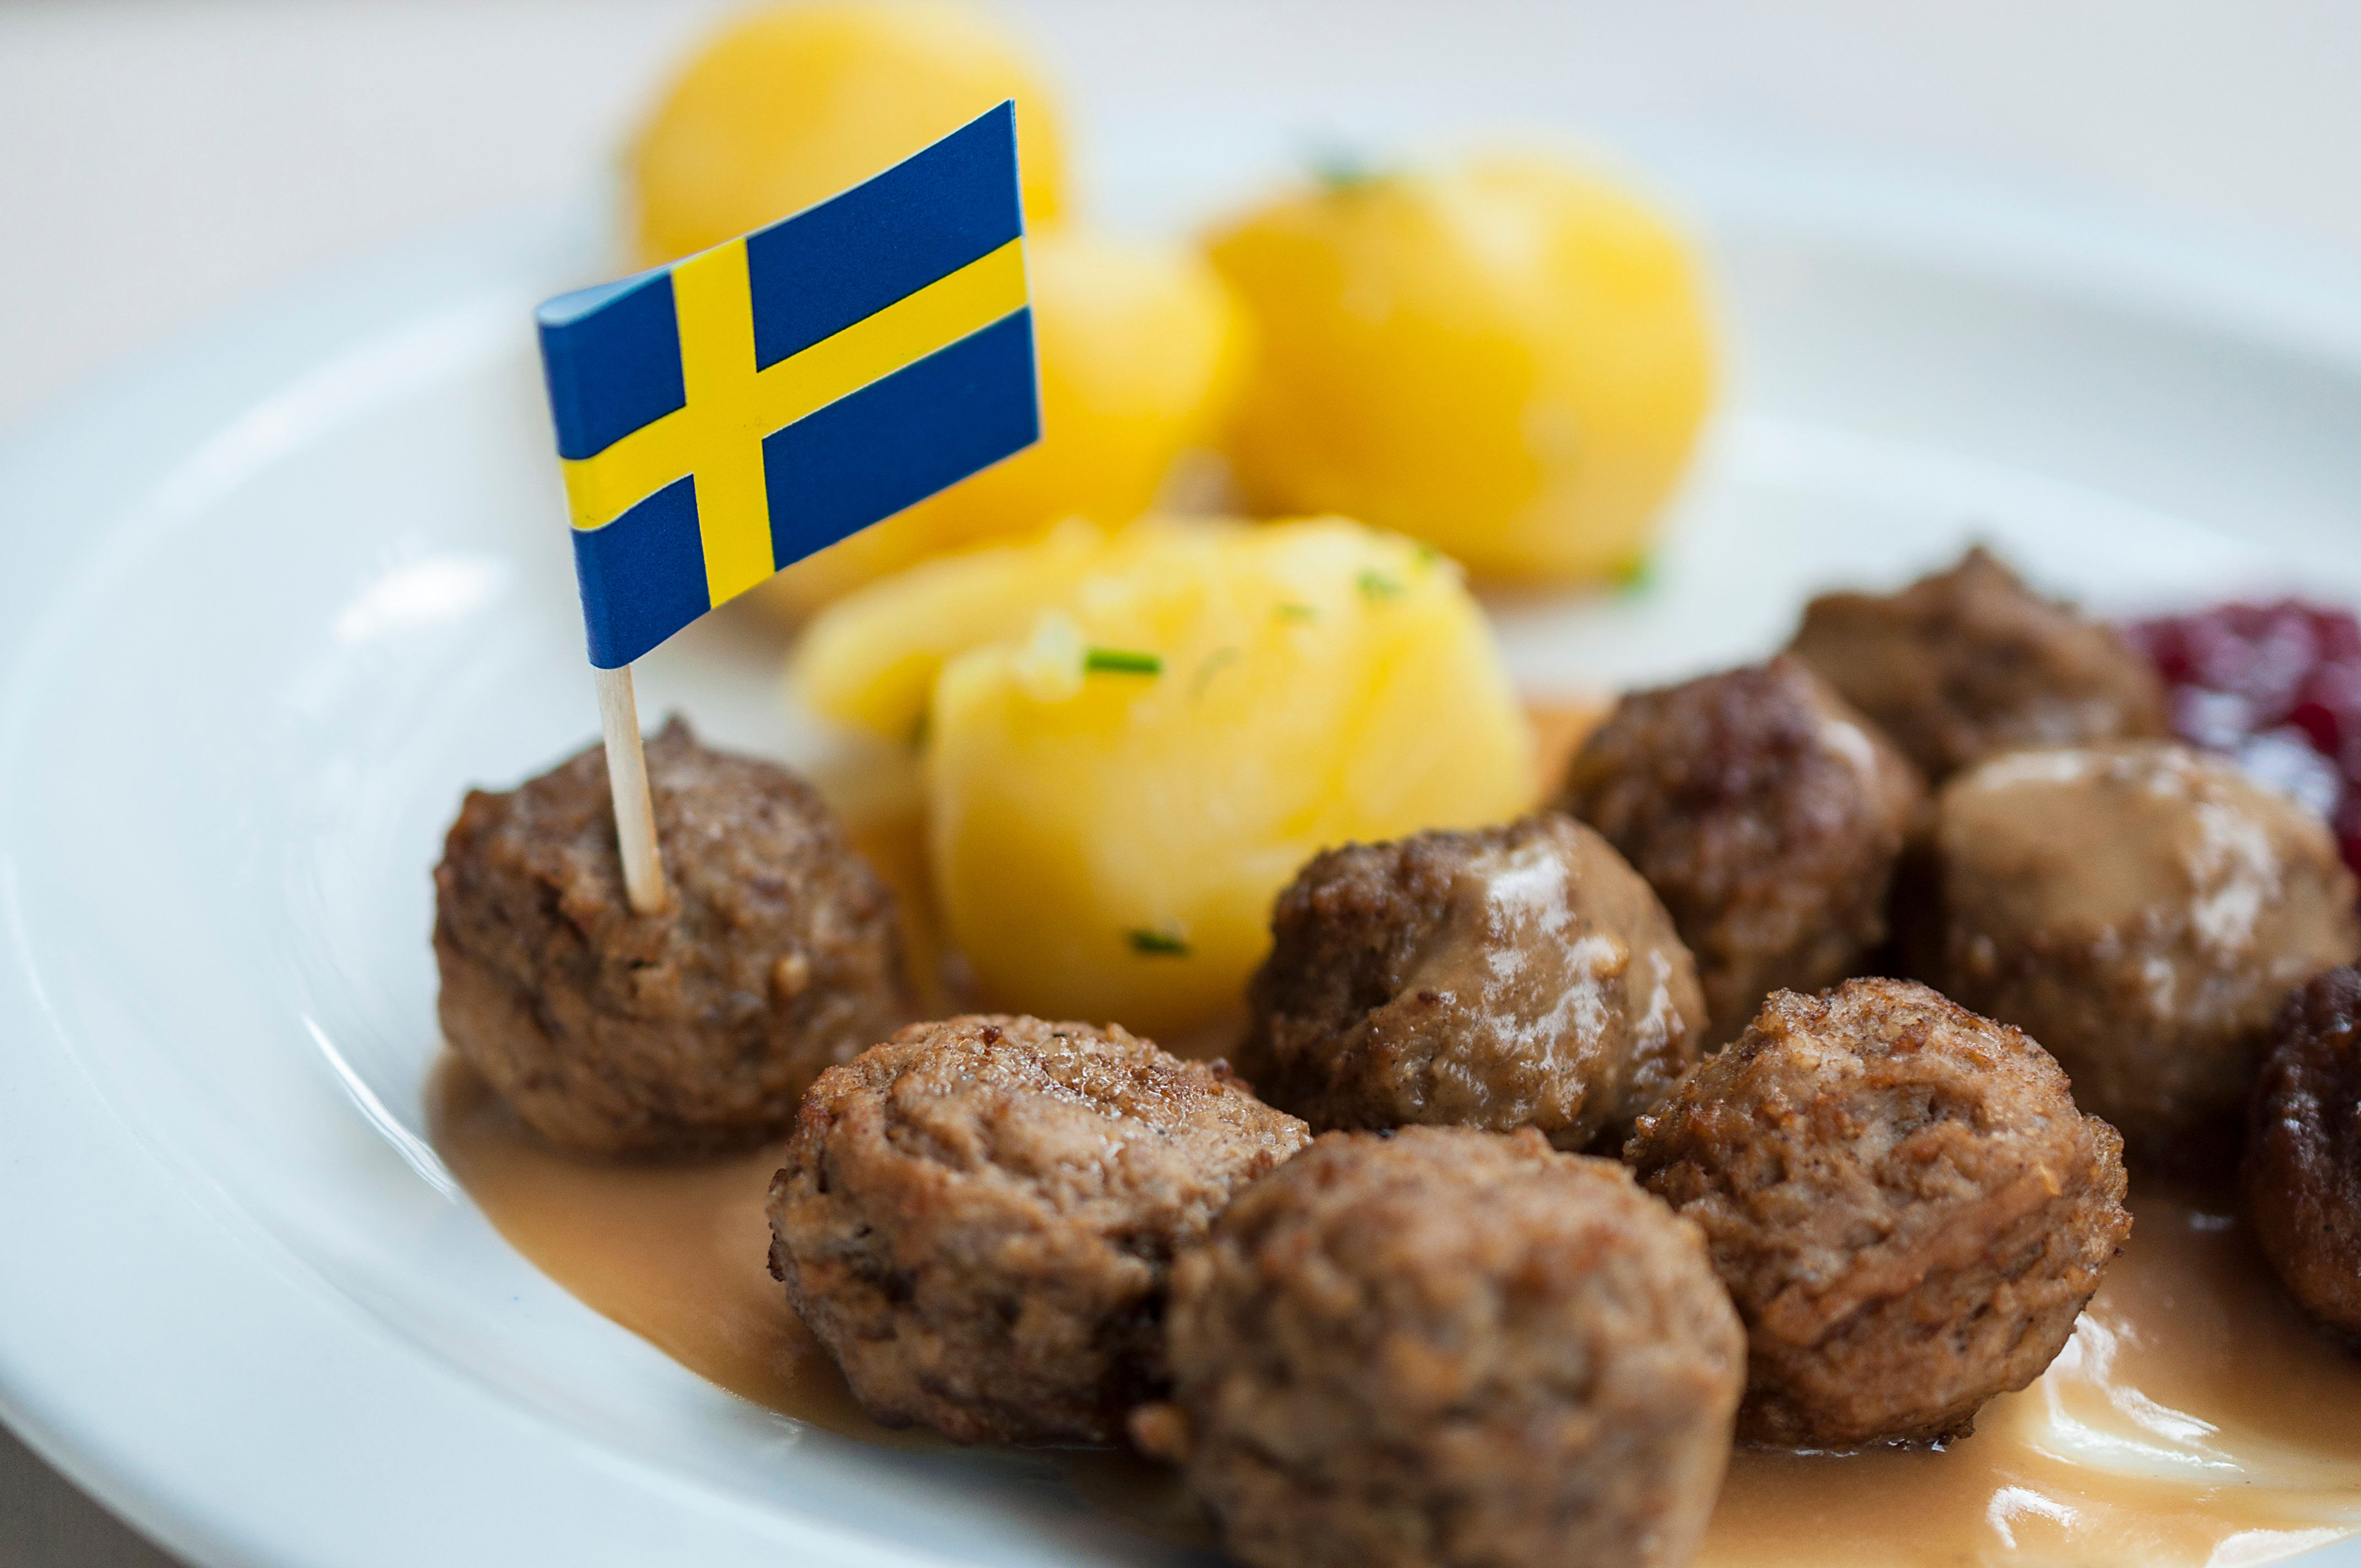 Meatballs with boiled potatoes and sweet red sauce decorated by Swedish flag - traditional Swedish dish